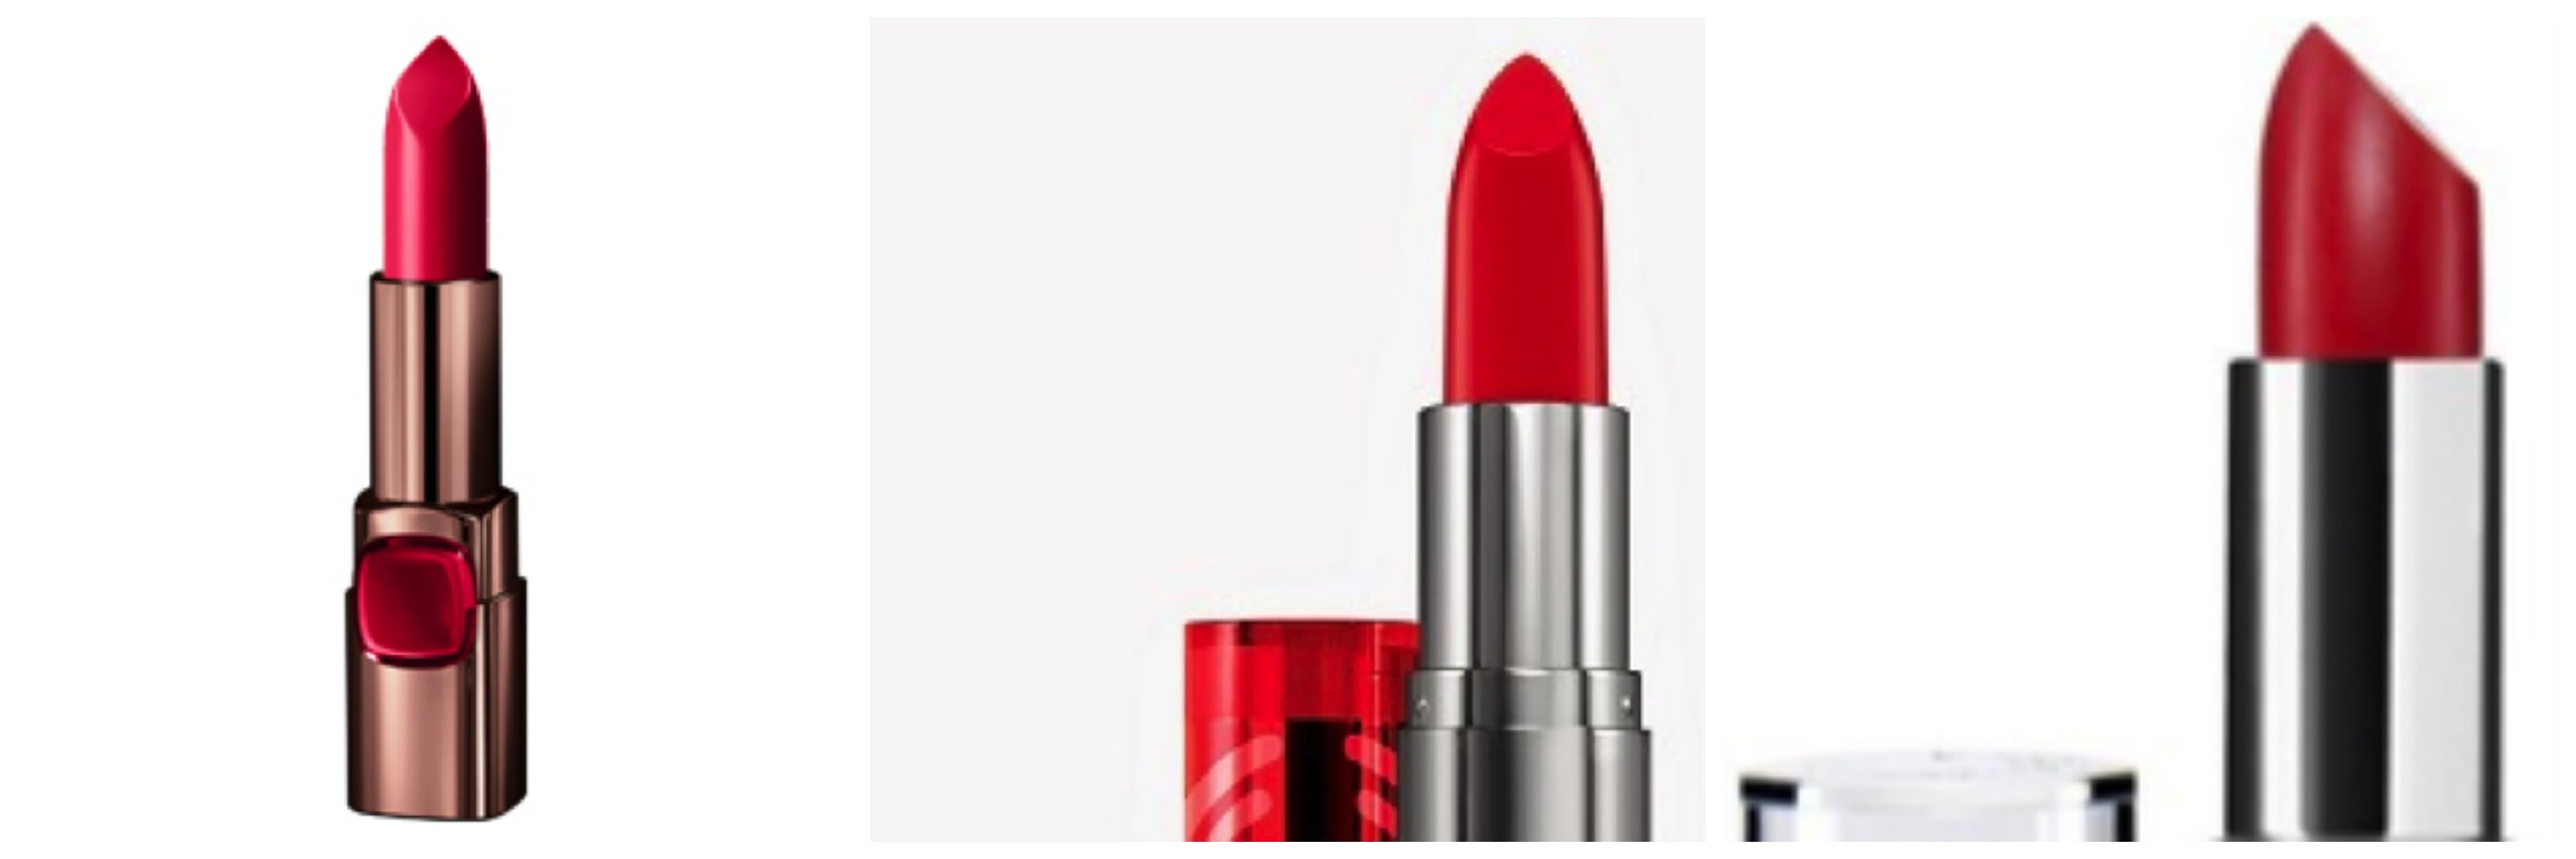 best red lipsticks for Indian skin tone